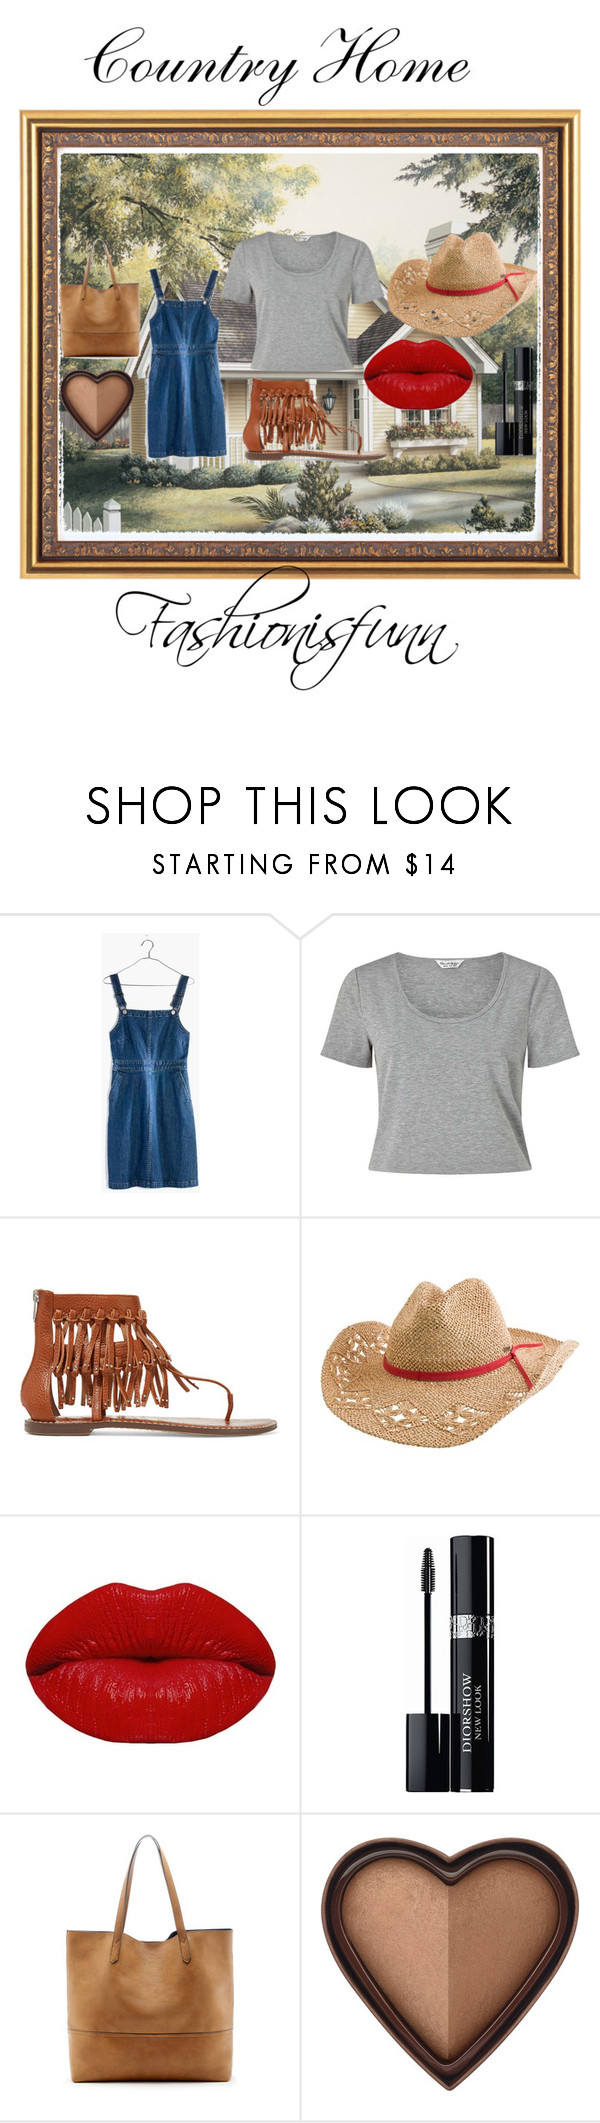 """""""Country Home Outfit"""" by fashionisfunn ❤ liked on Polyvore featuring Madewell, Miss Selfridge, Sam Edelman, Quiksilver, Winky Lux, Christian Dior, Sole Society, Too Faced Cosmetics and country"""